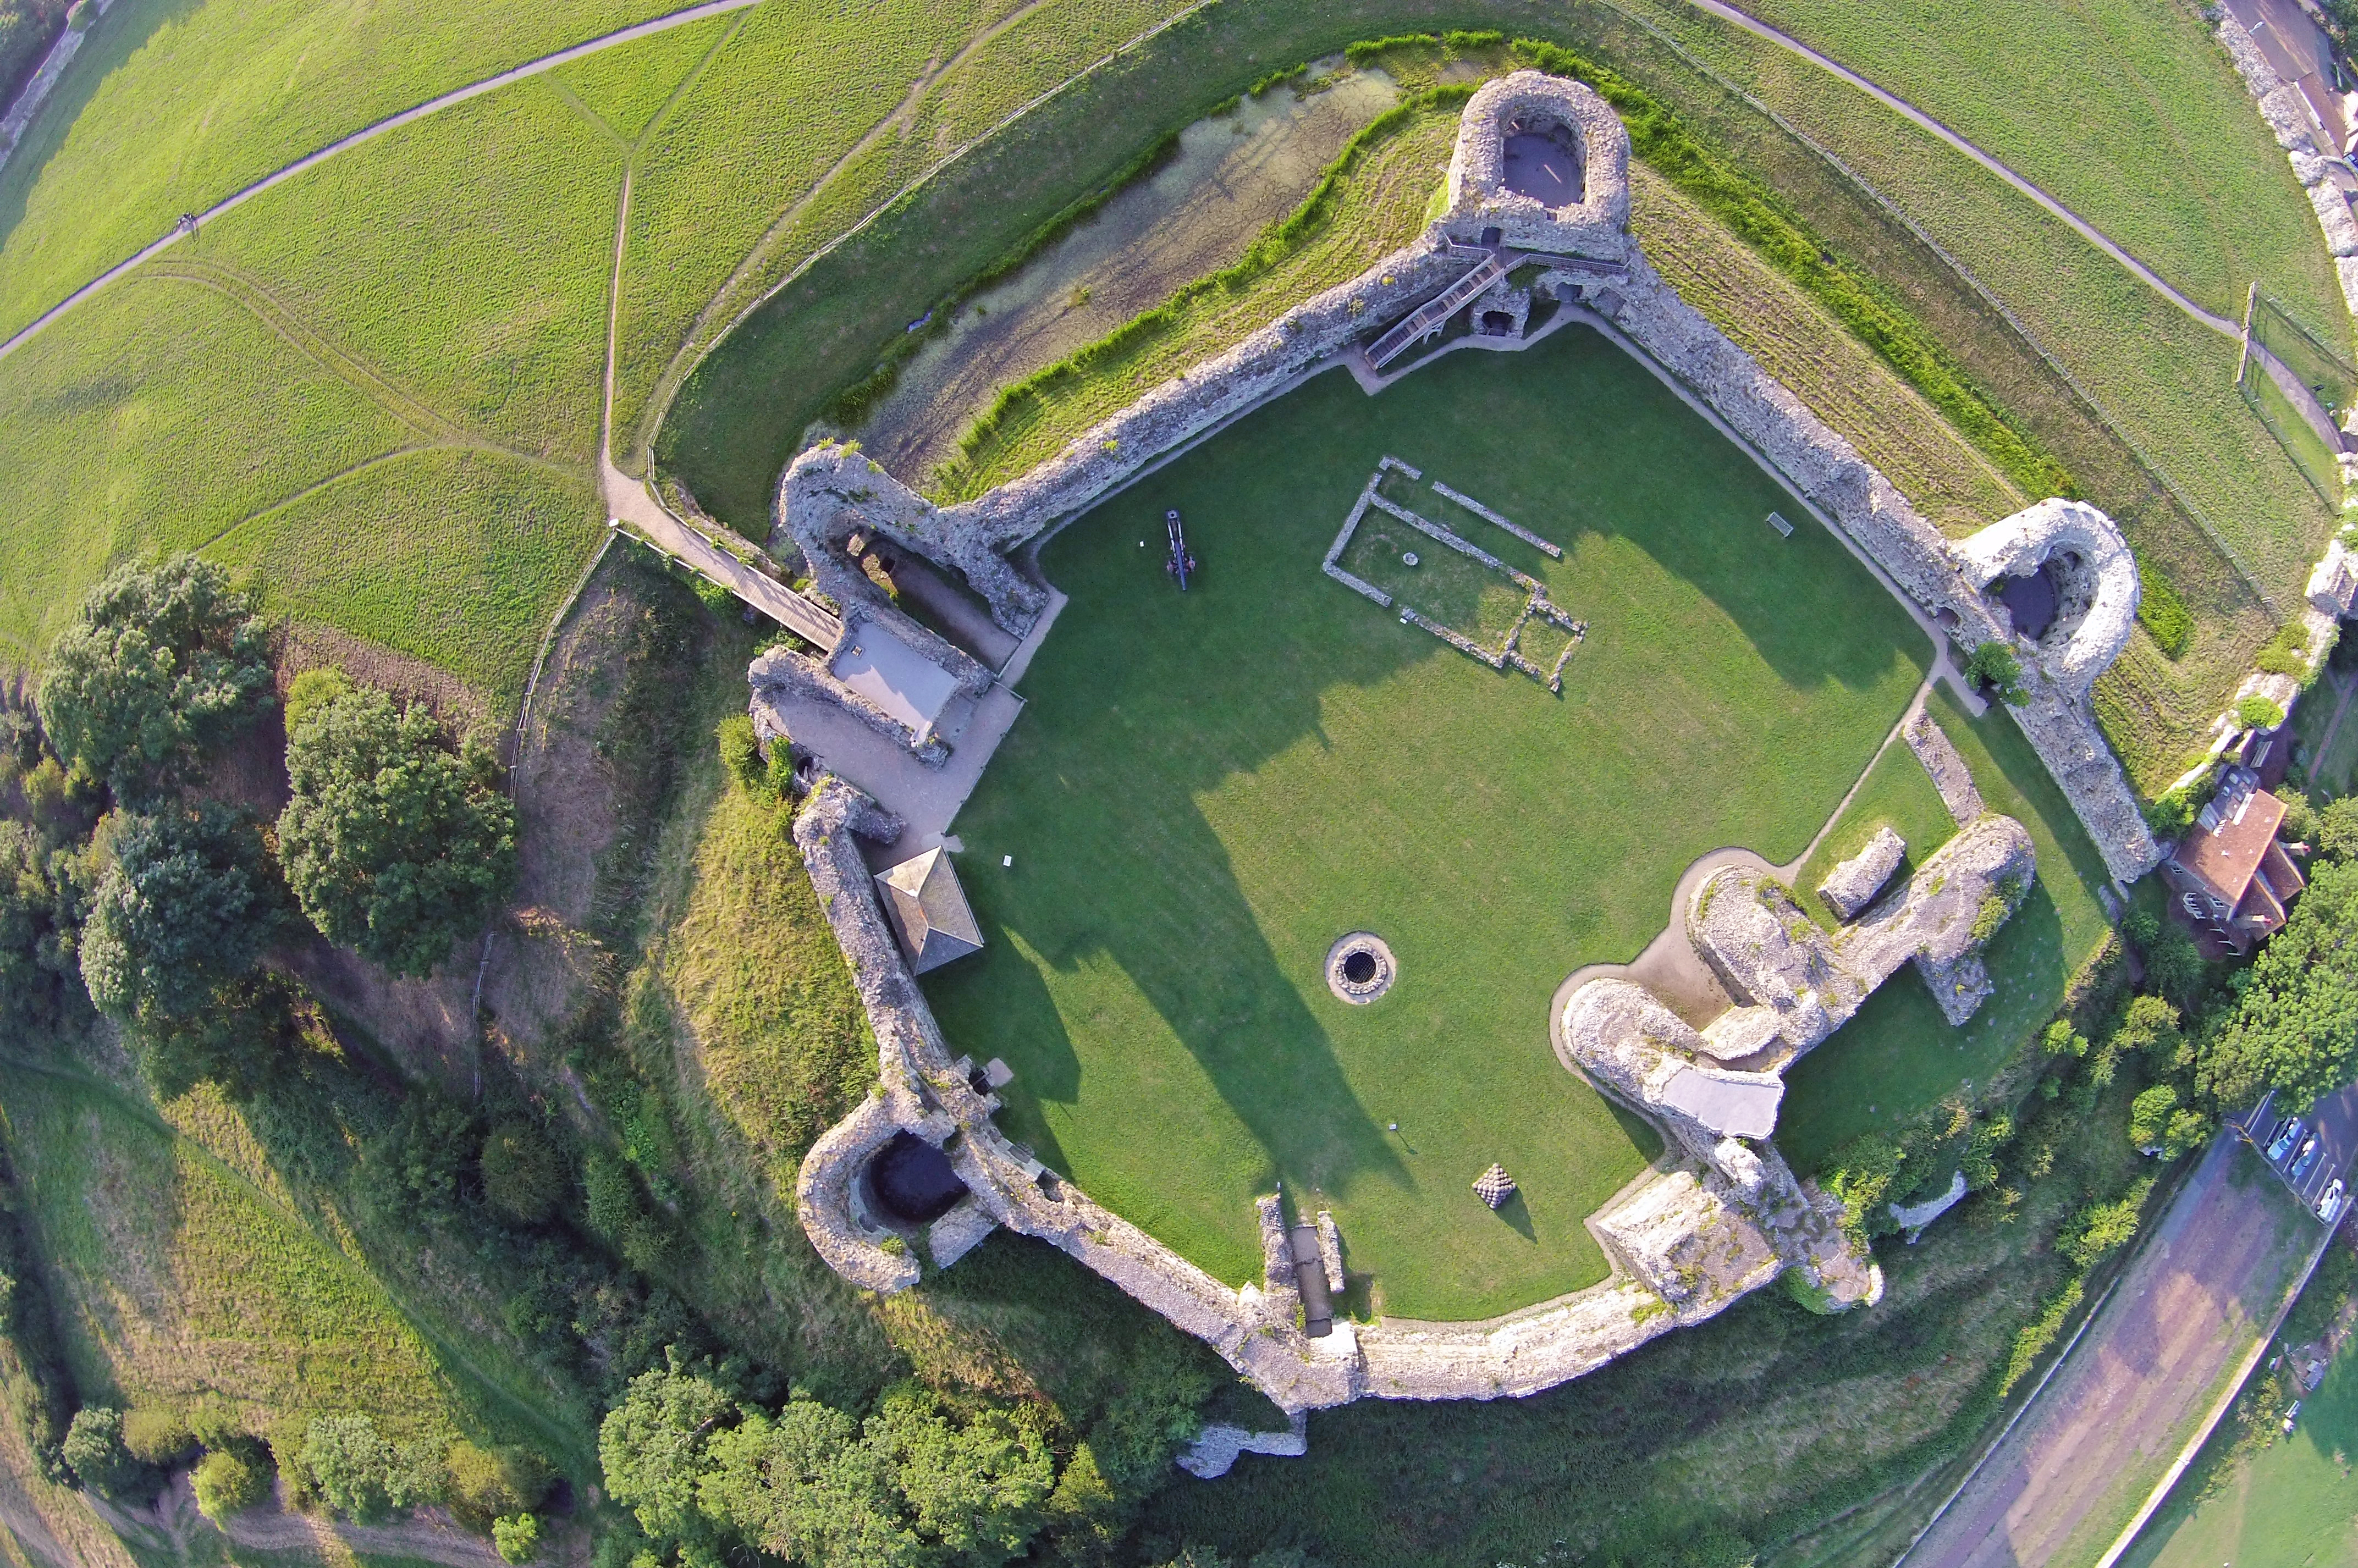 File:Aerial photograph of Pevensey Castle (top view) taken ...